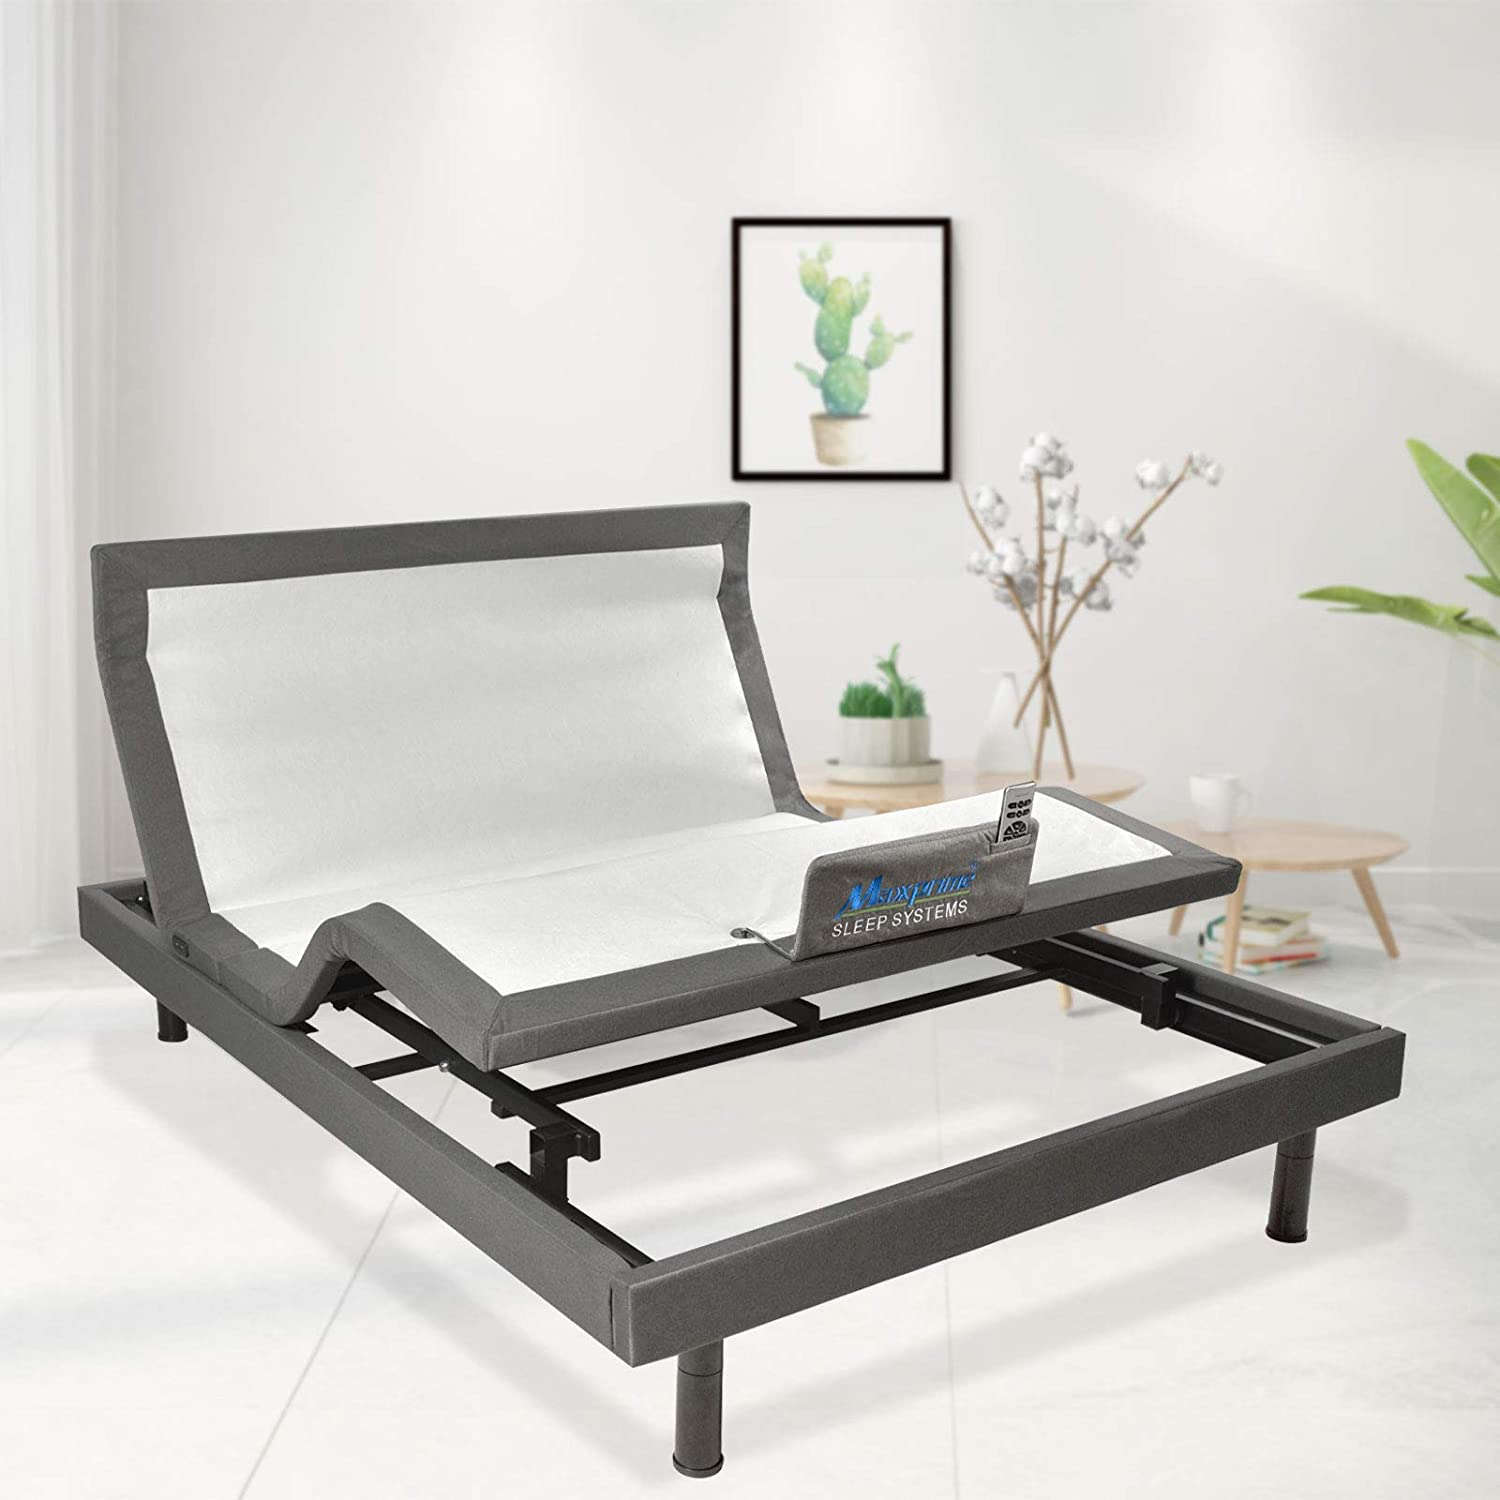 Maxxprime Wall Max 40% OFF Hugger Adjustable 70% OFF Outlet Bed Frame Motor Elec with Okin